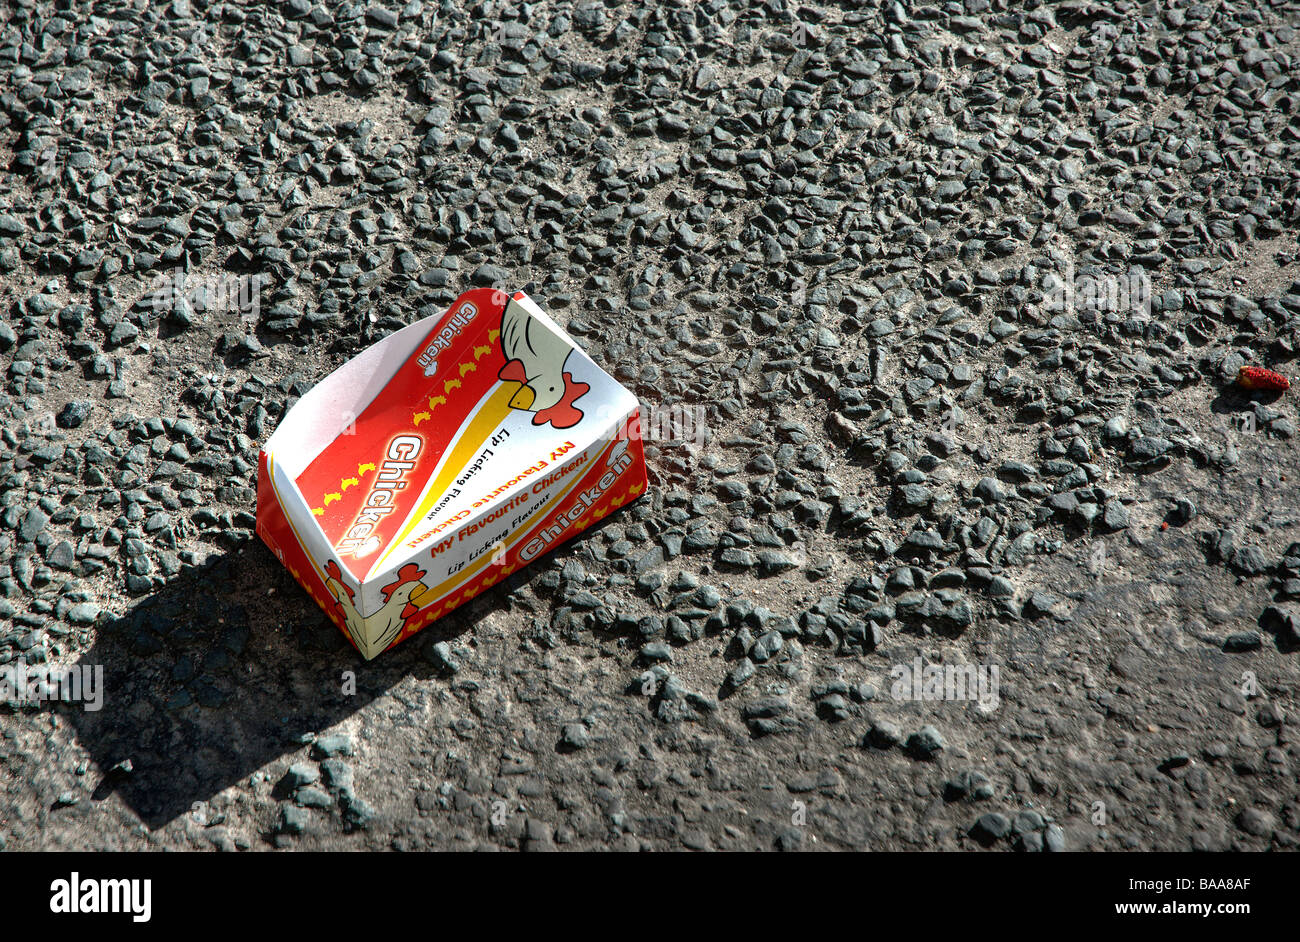 Flavourite Chicken box thrown out of a car onto a road - Stock Image